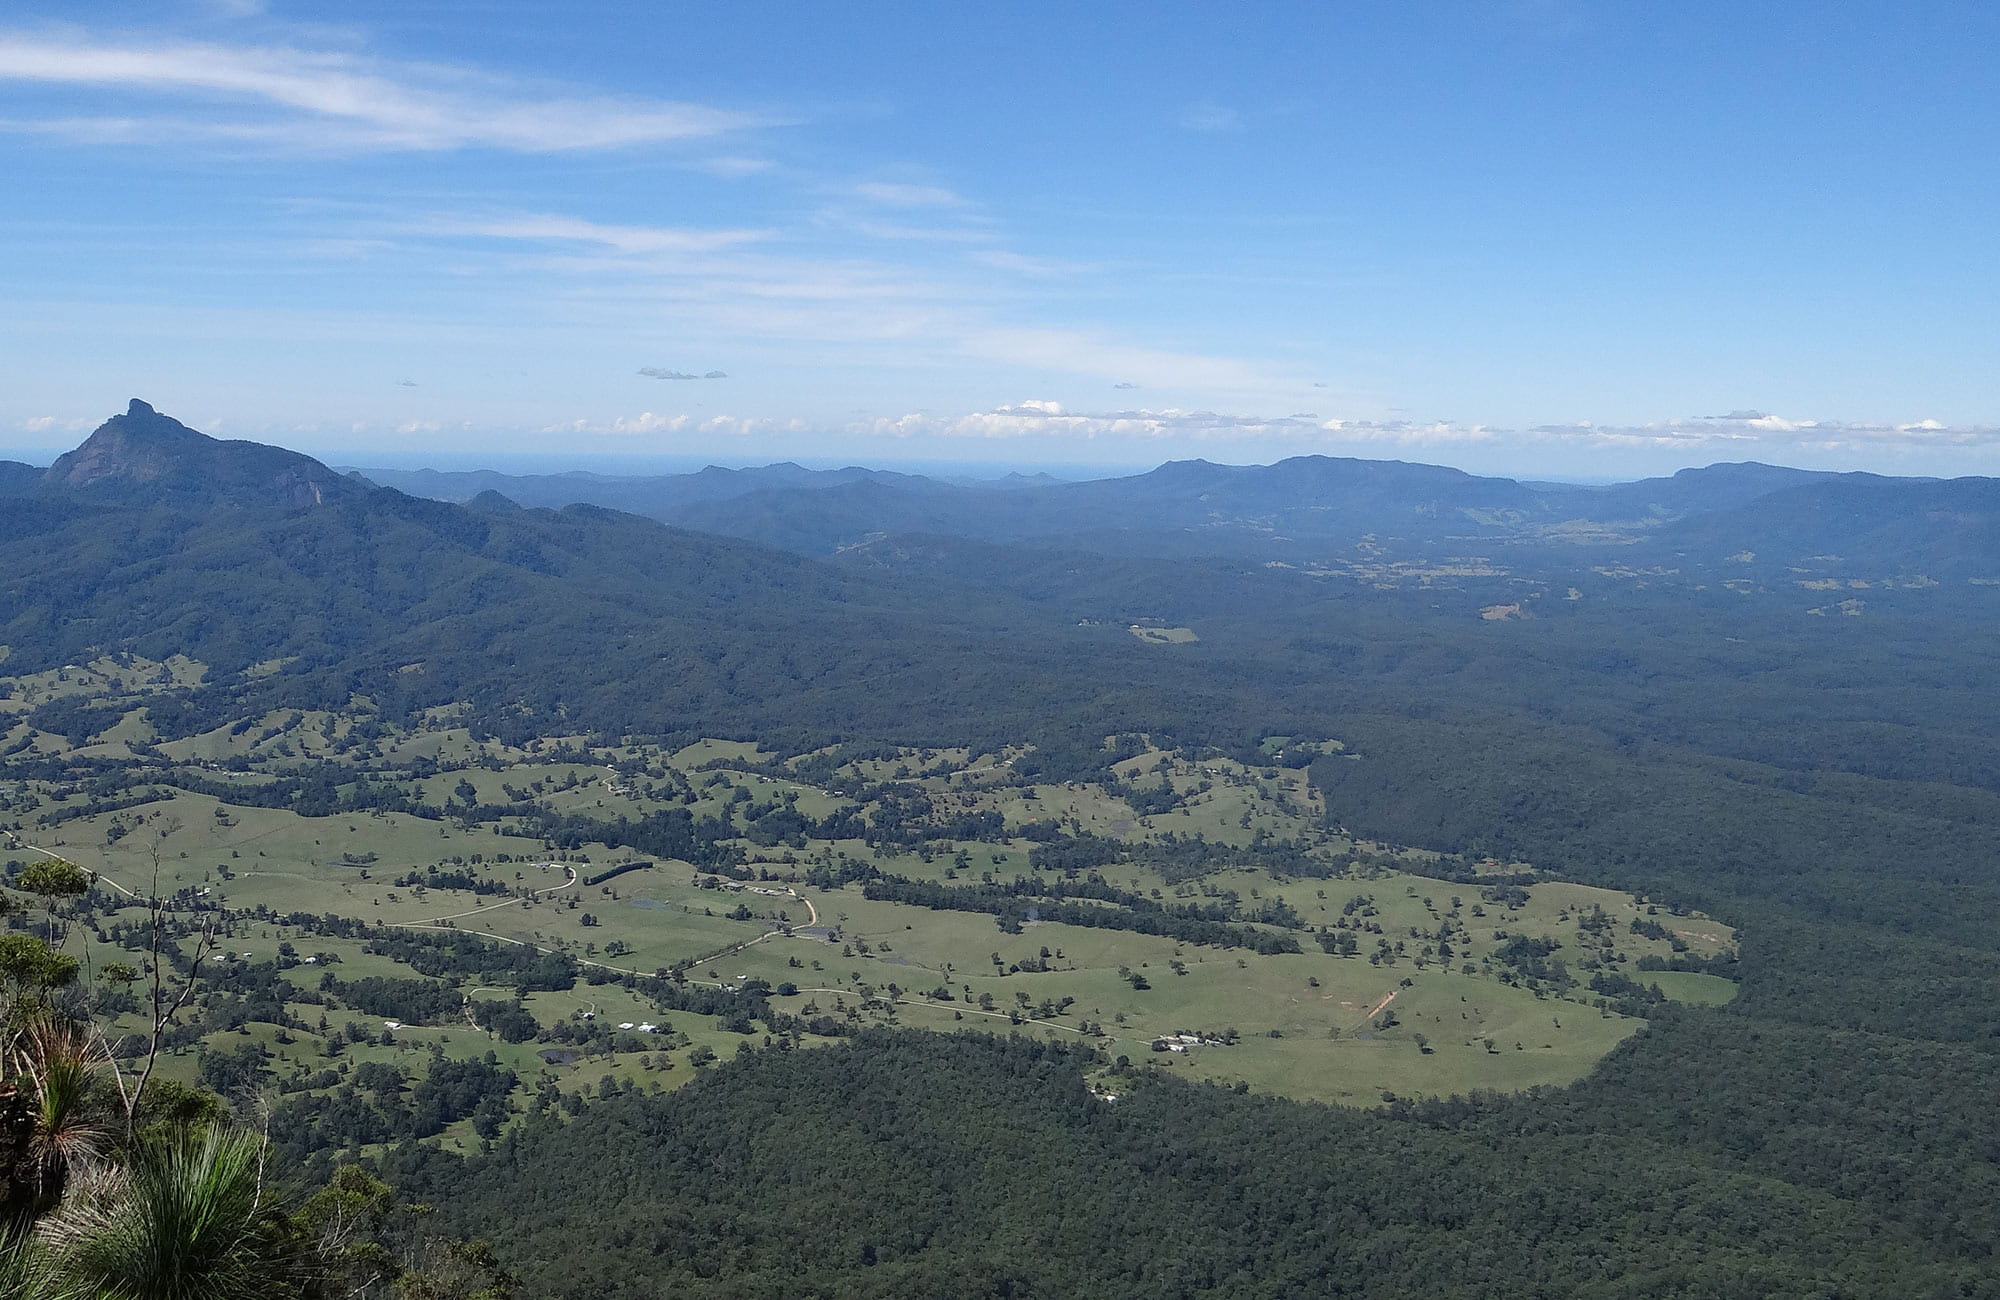 View of Wollumbin (Mount Warning) and Tweed Valley from Pinnacle walk and lookout, Border Ranges National Park. Photo: John Spencer/OEH